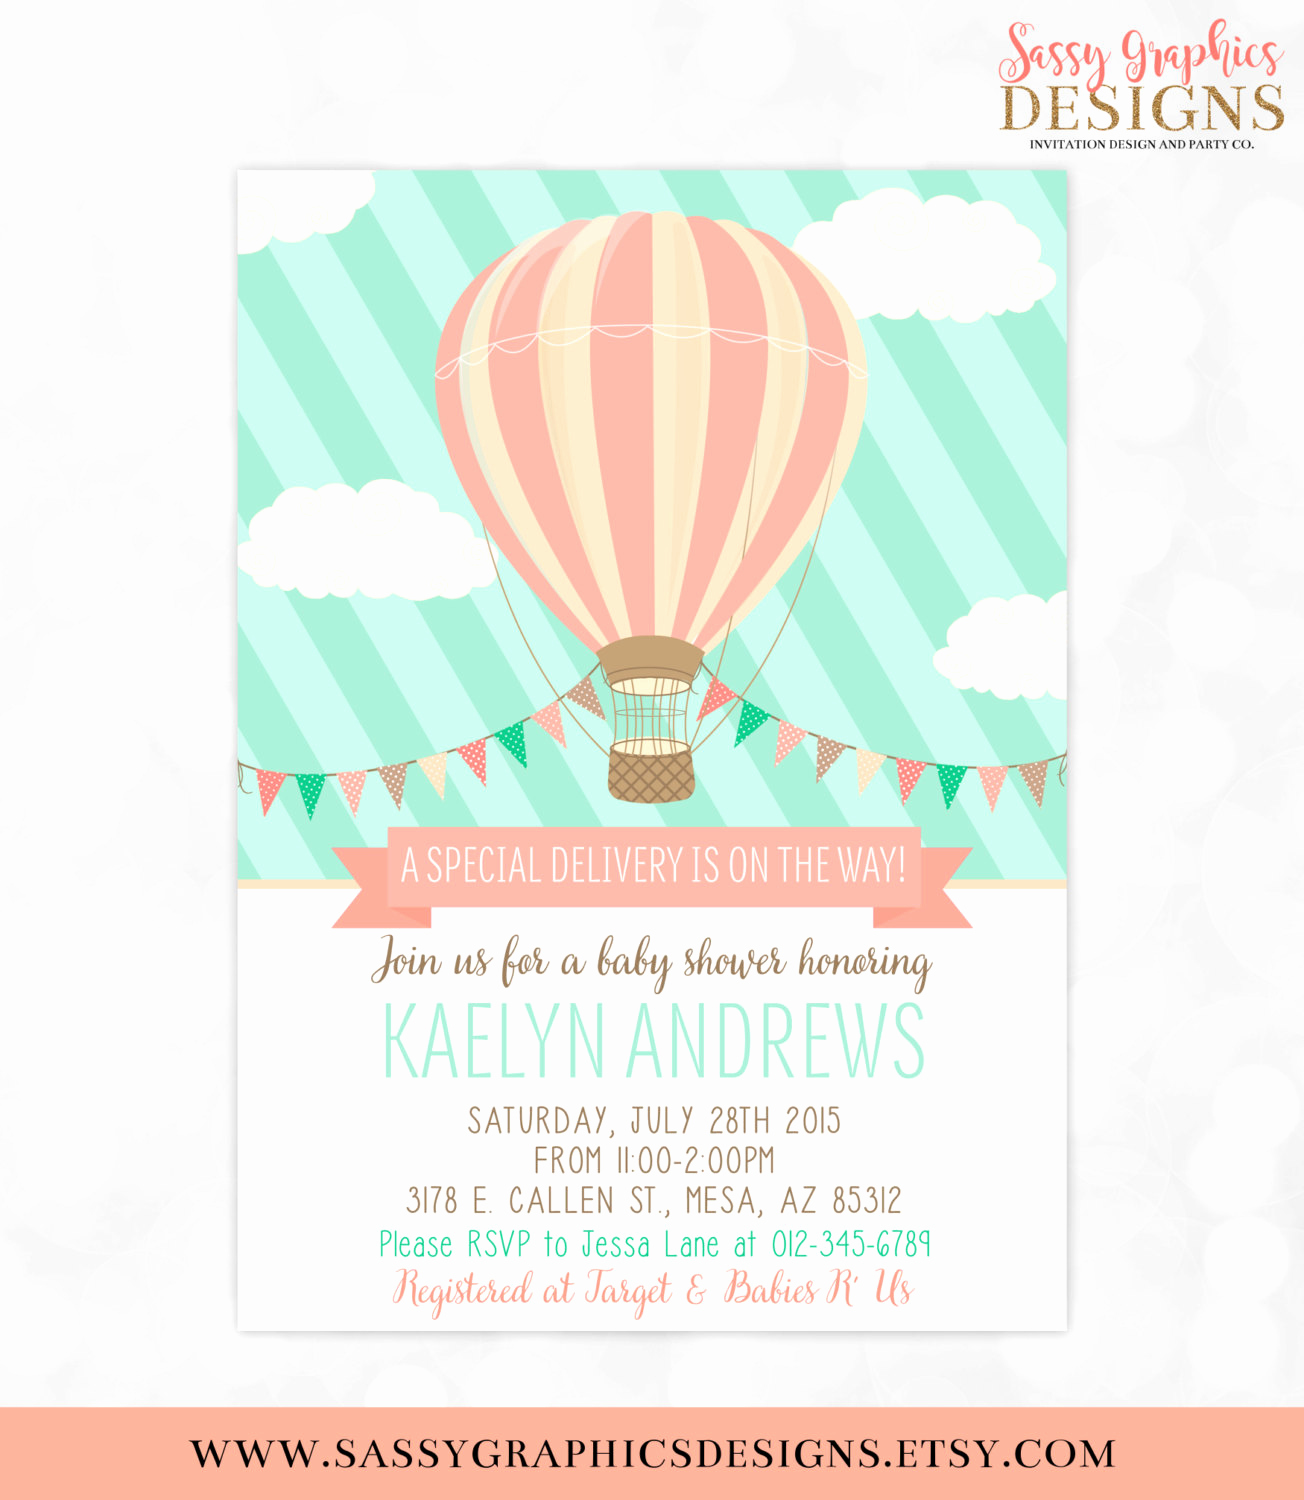 Hot Air Balloon Invitation Beautiful Hot Air Balloon Baby Shower Invitation Mint Coral Baby Shower